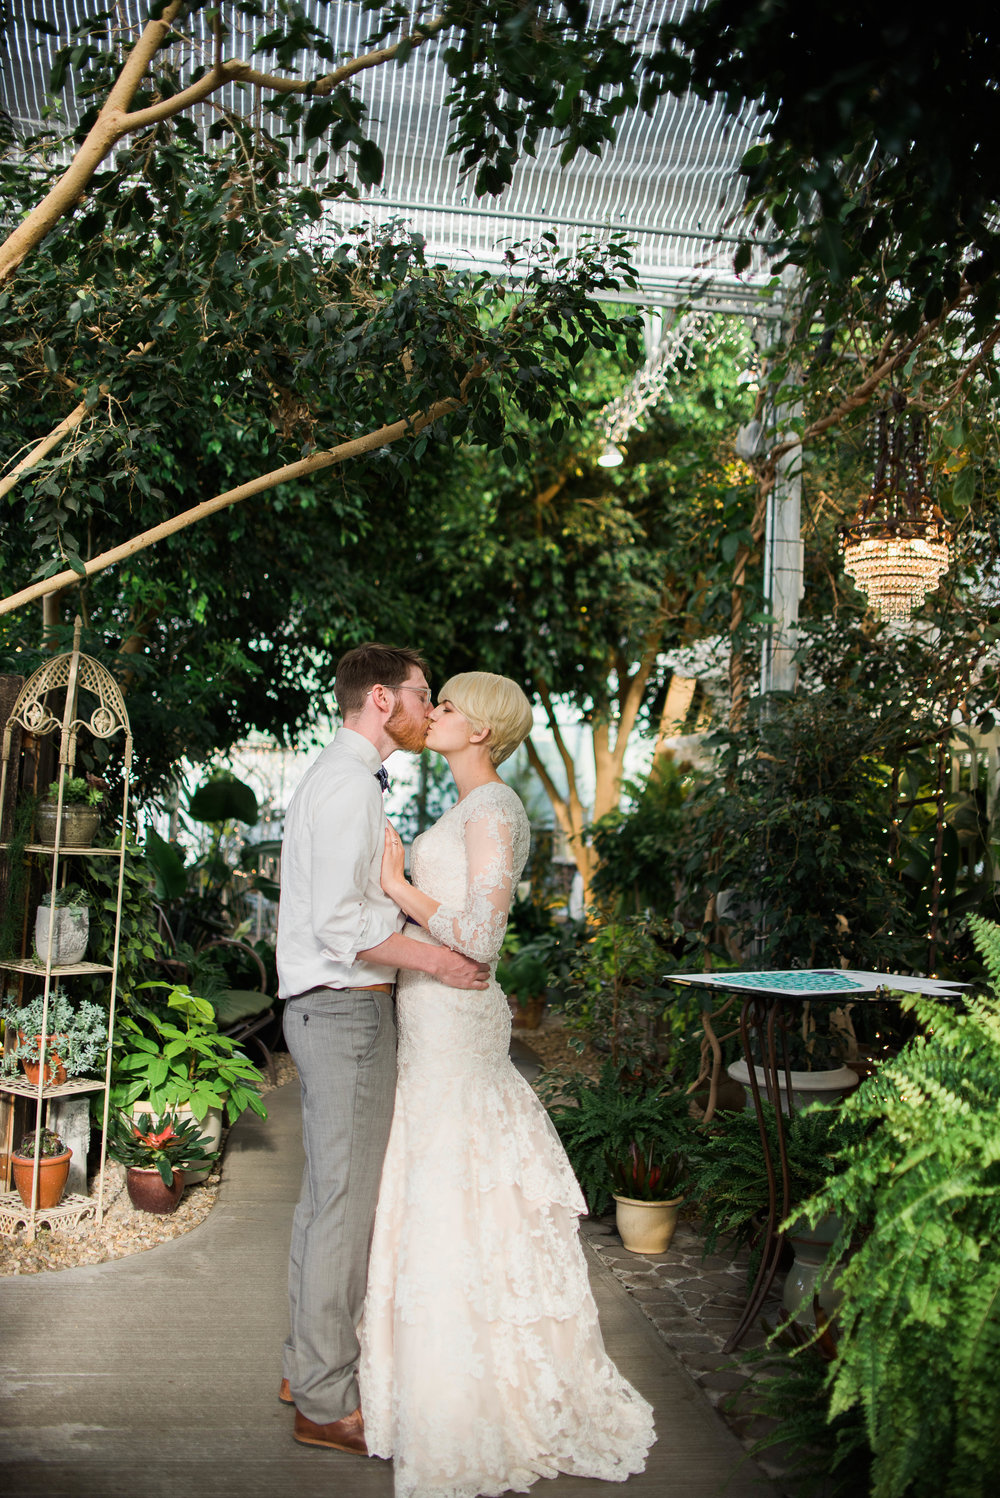 K+M-Wedding-DaySadie_Banks_Photography-901.jpg